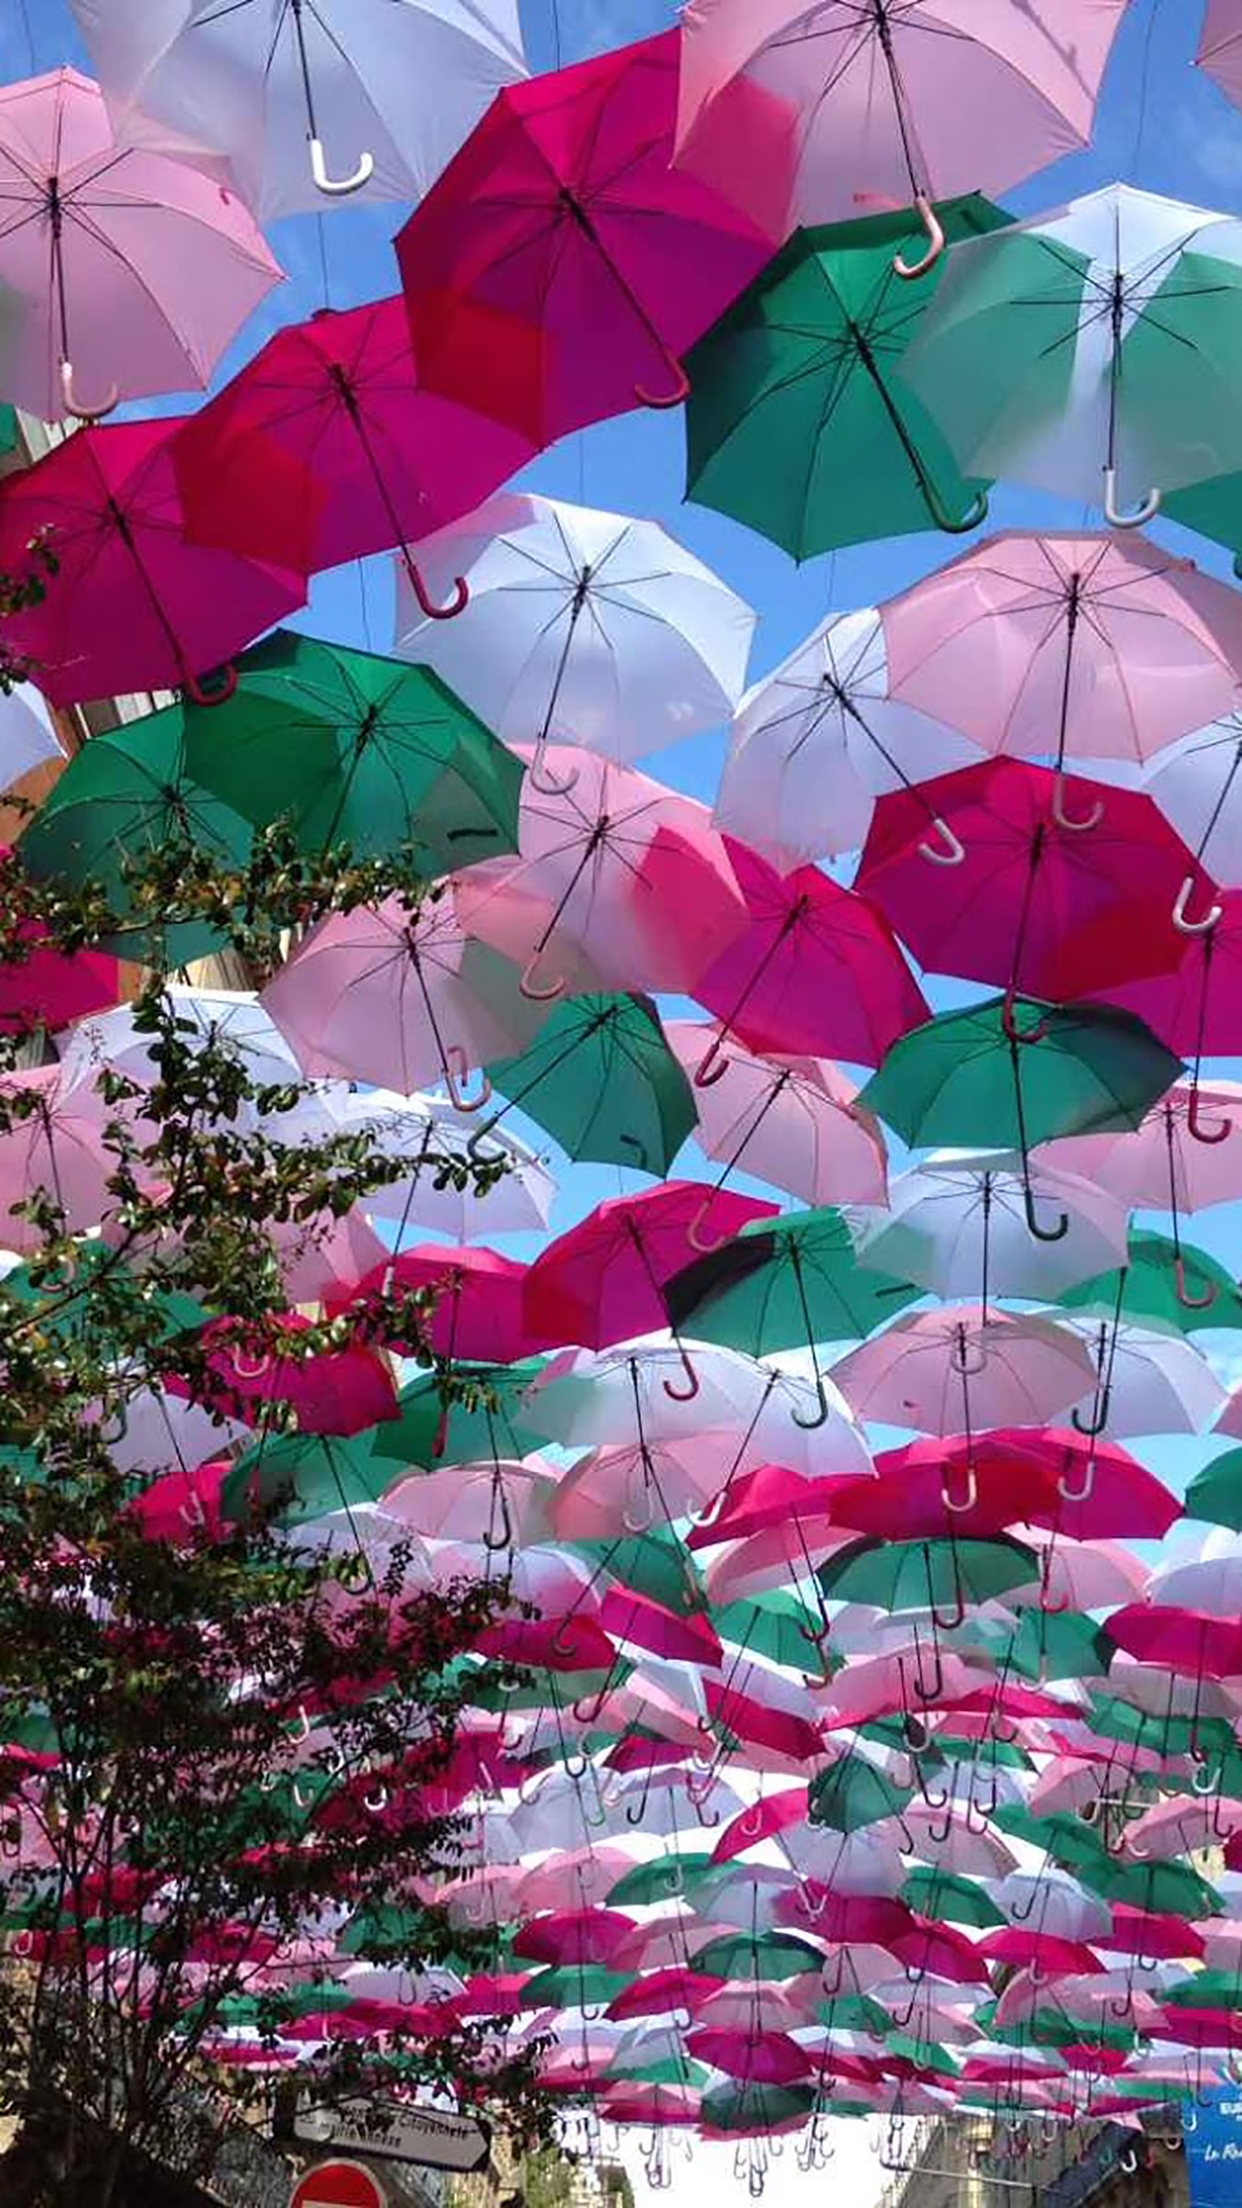 Umbrella Umbrella Roof 3Wallpapers iPhone Parallax Les 3Wallpapers iPhone du jour (13/01/2017)